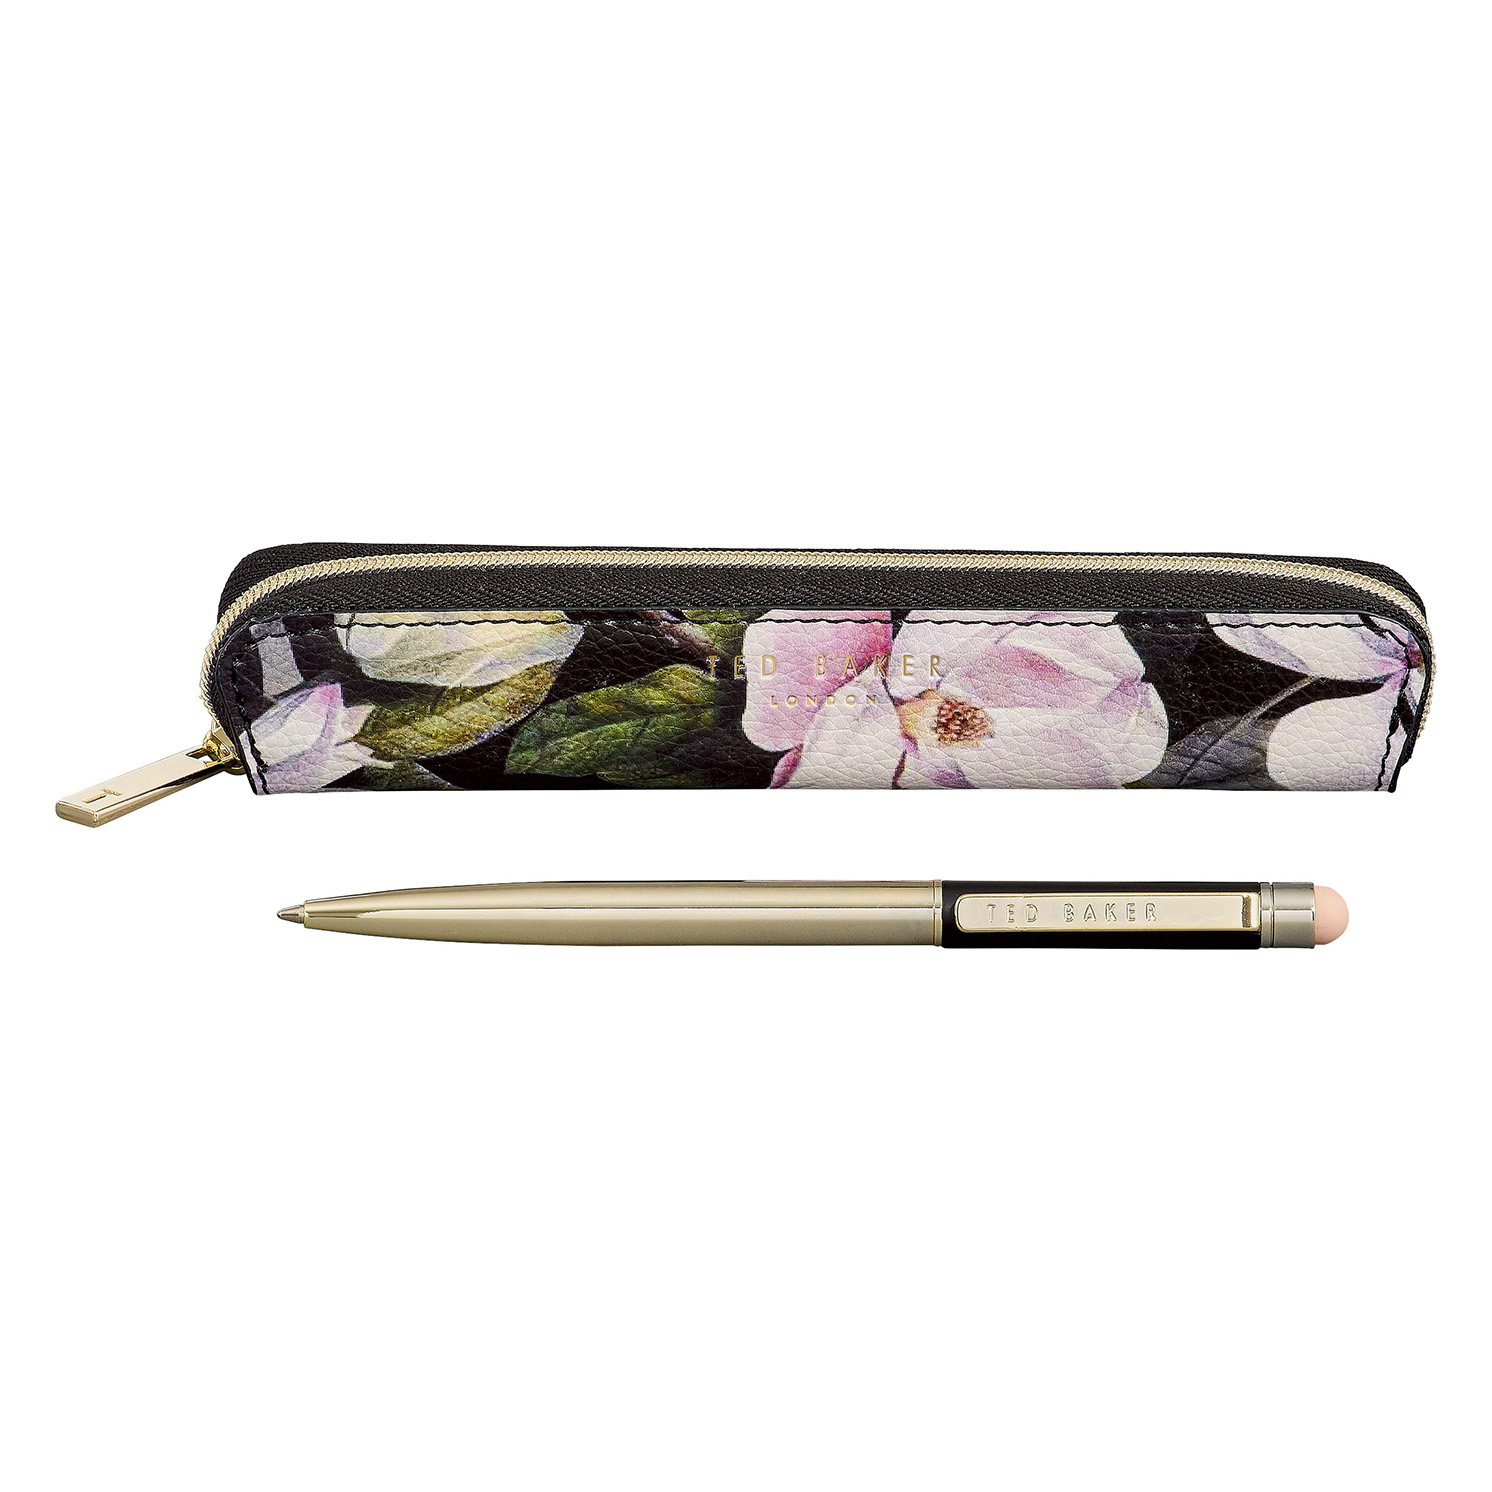 "Ted Baker – Black Opal Touchscreen Pen with Case in ""Truly Gifted"" Gift Box"